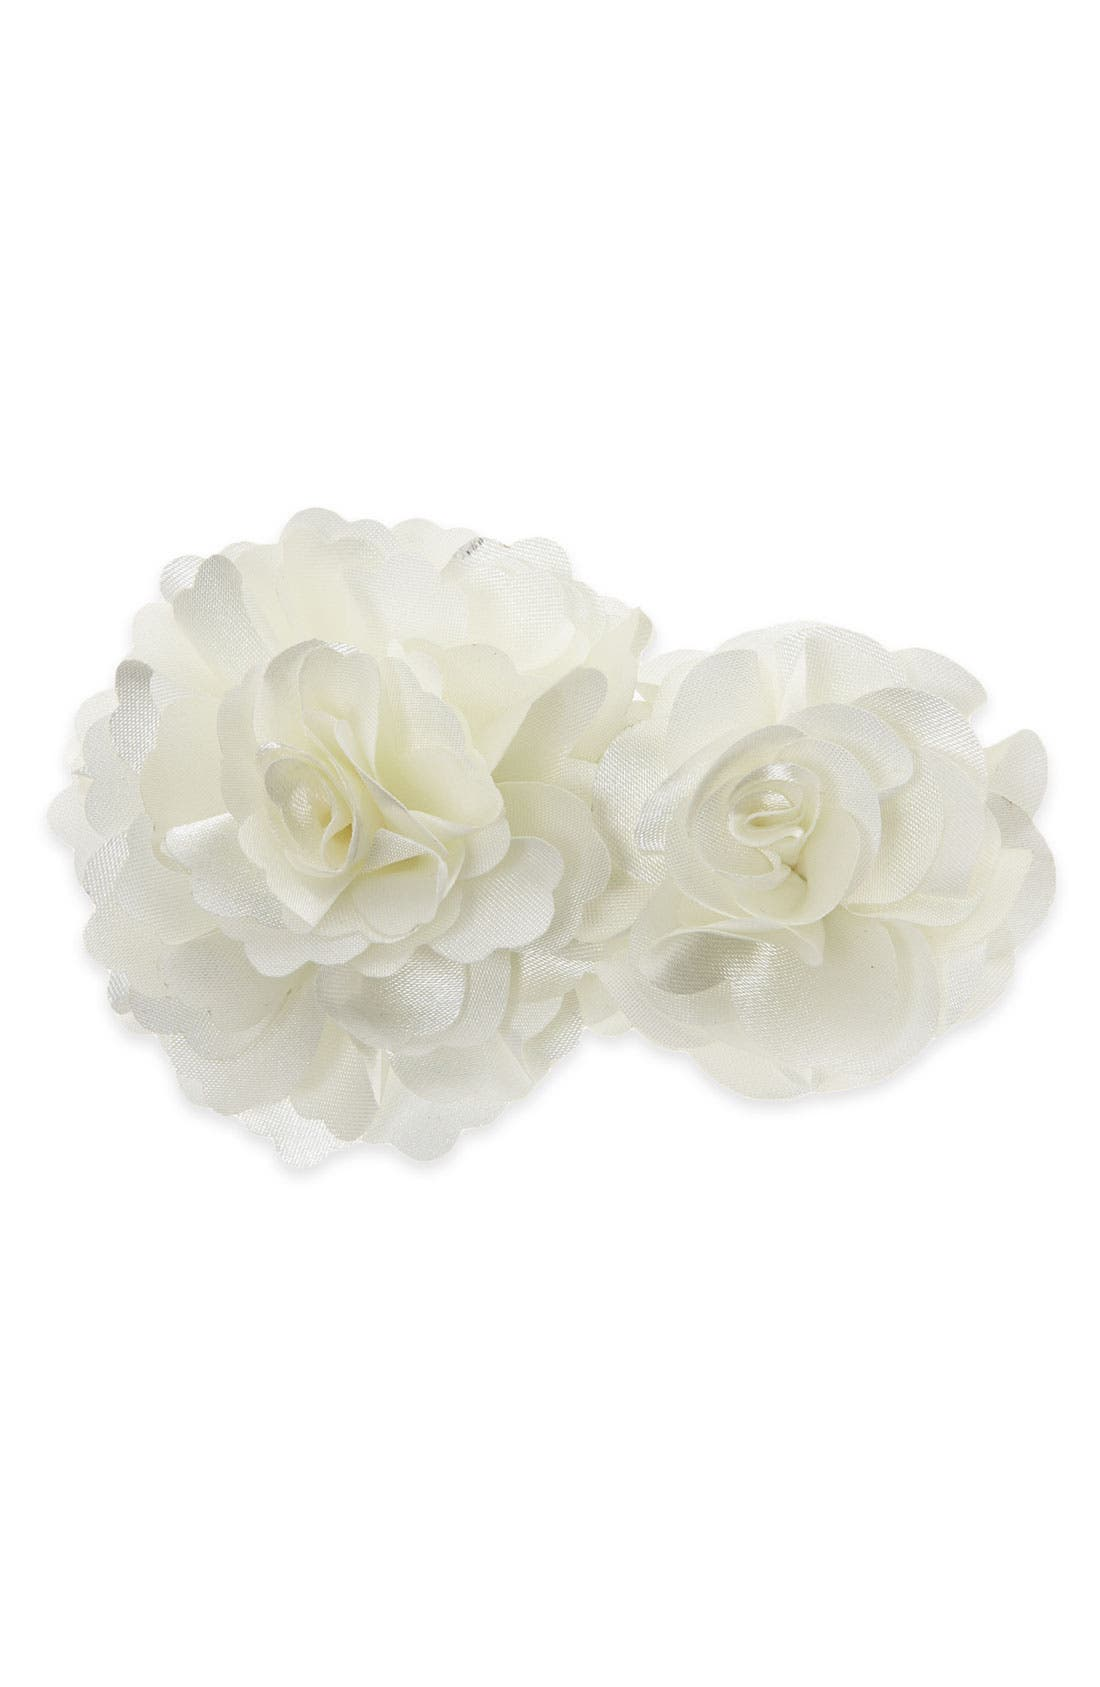 Alternate Image 1 Selected - Tasha 'Double Flower' Hair Clip